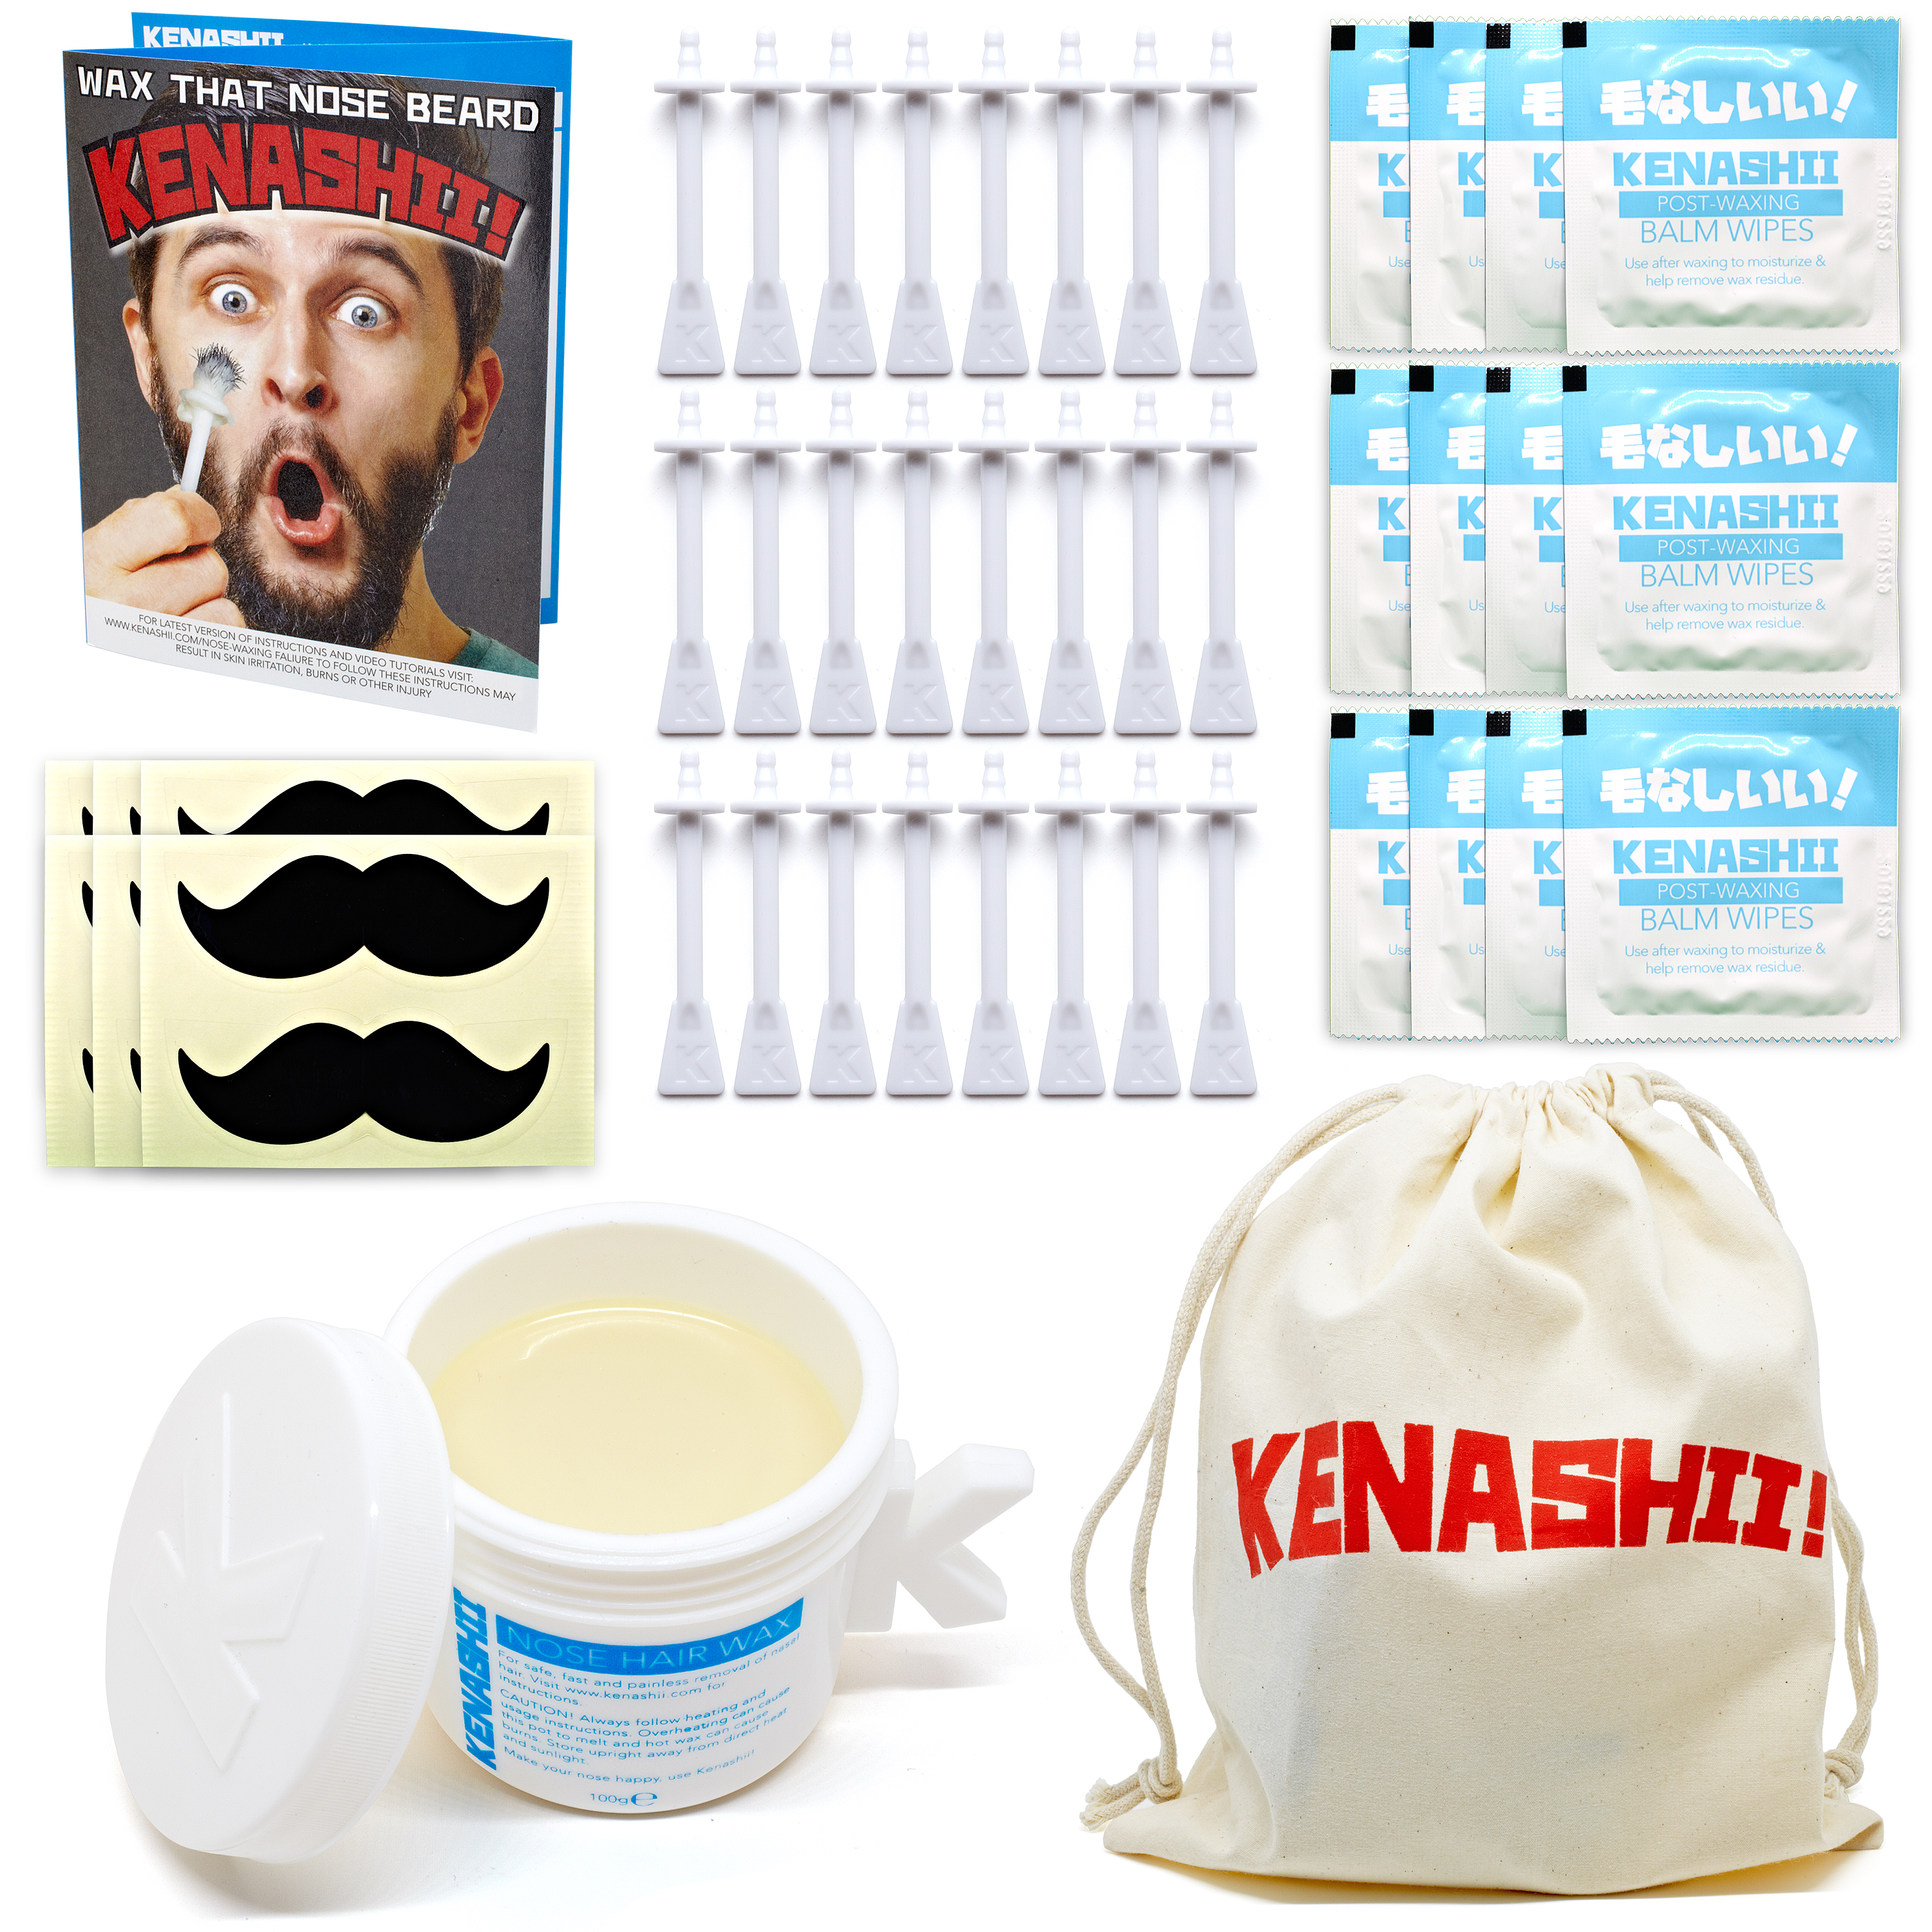 Contents of Kenashii Nose Waxing Kit, 100g of Specially formulated wax, 20 Applicator Sticks, 10 Balm Wipes and Instructions